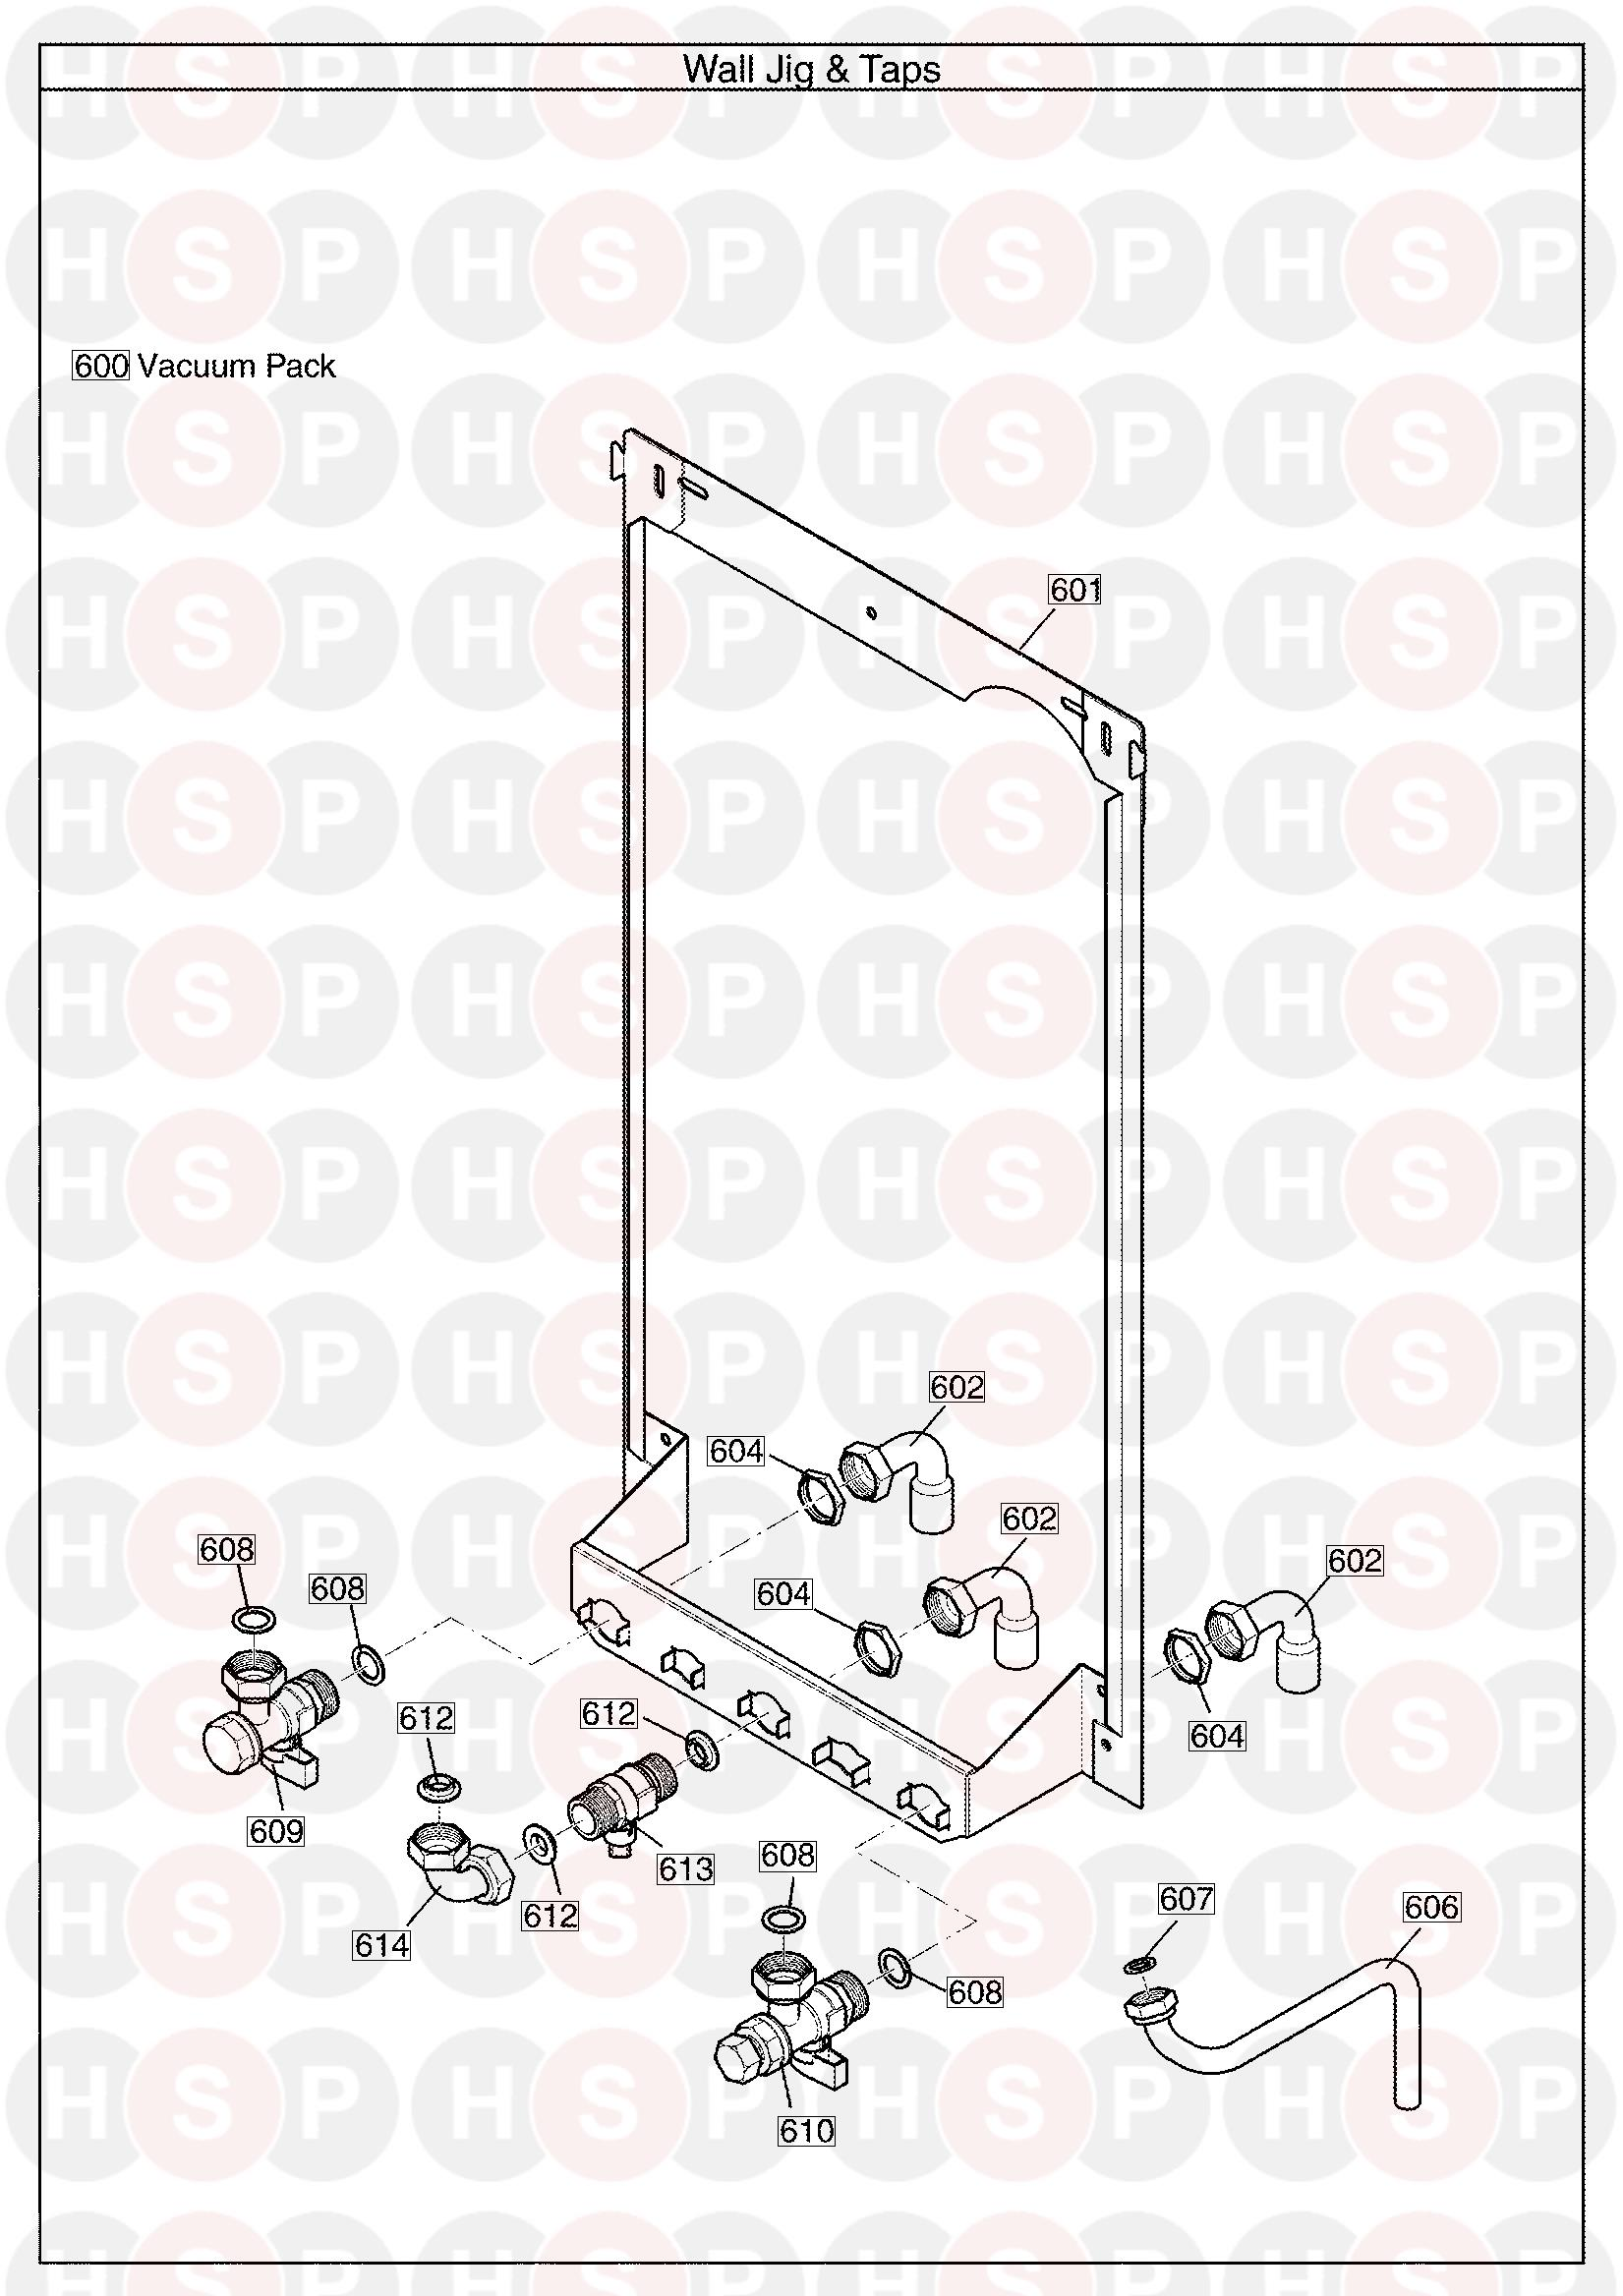 Potterton PERFORMA 24 HE SYSTEM (Wall Jig & Hydraulic